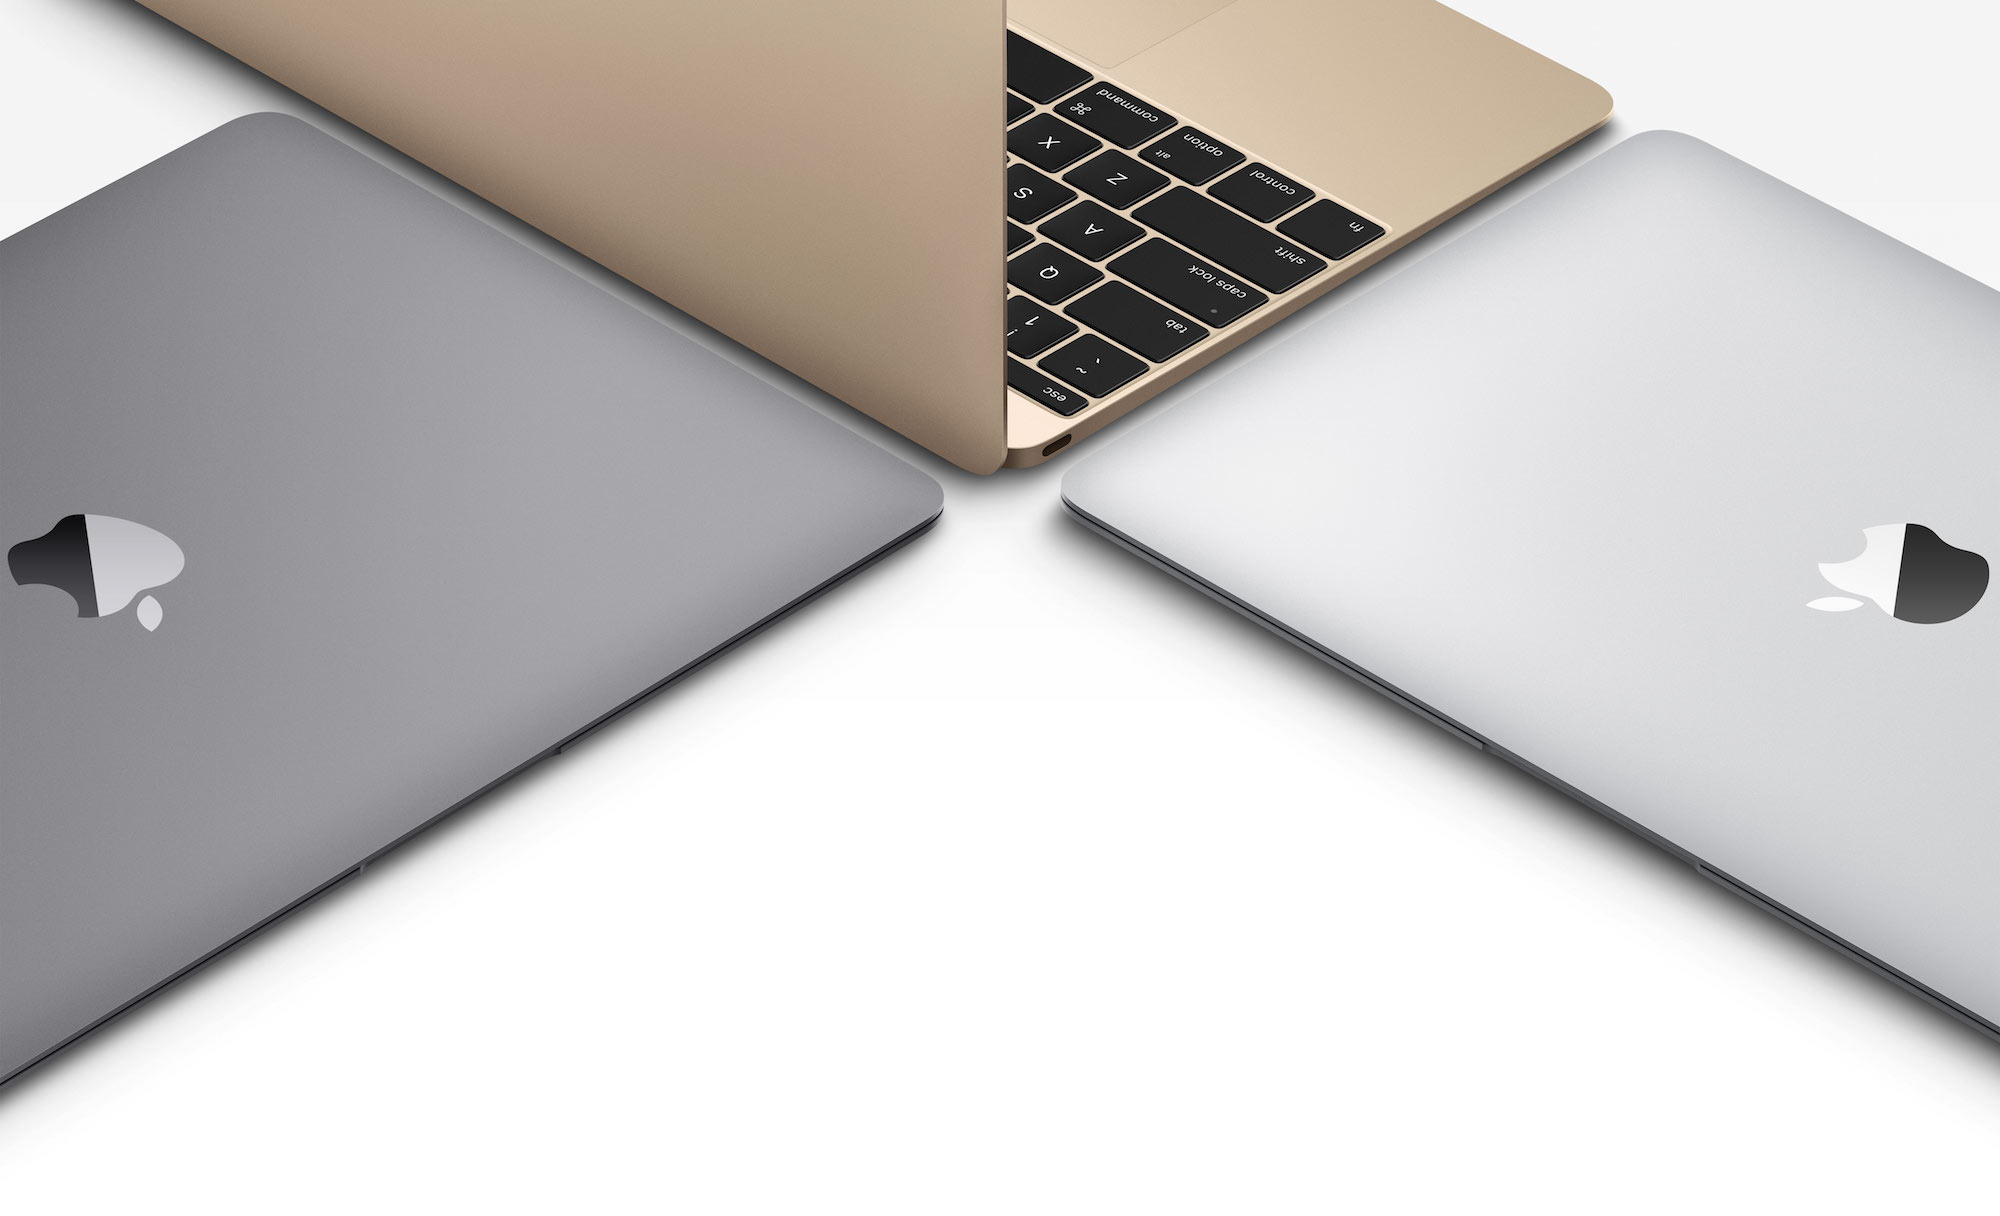 MacBook 12 colour hero